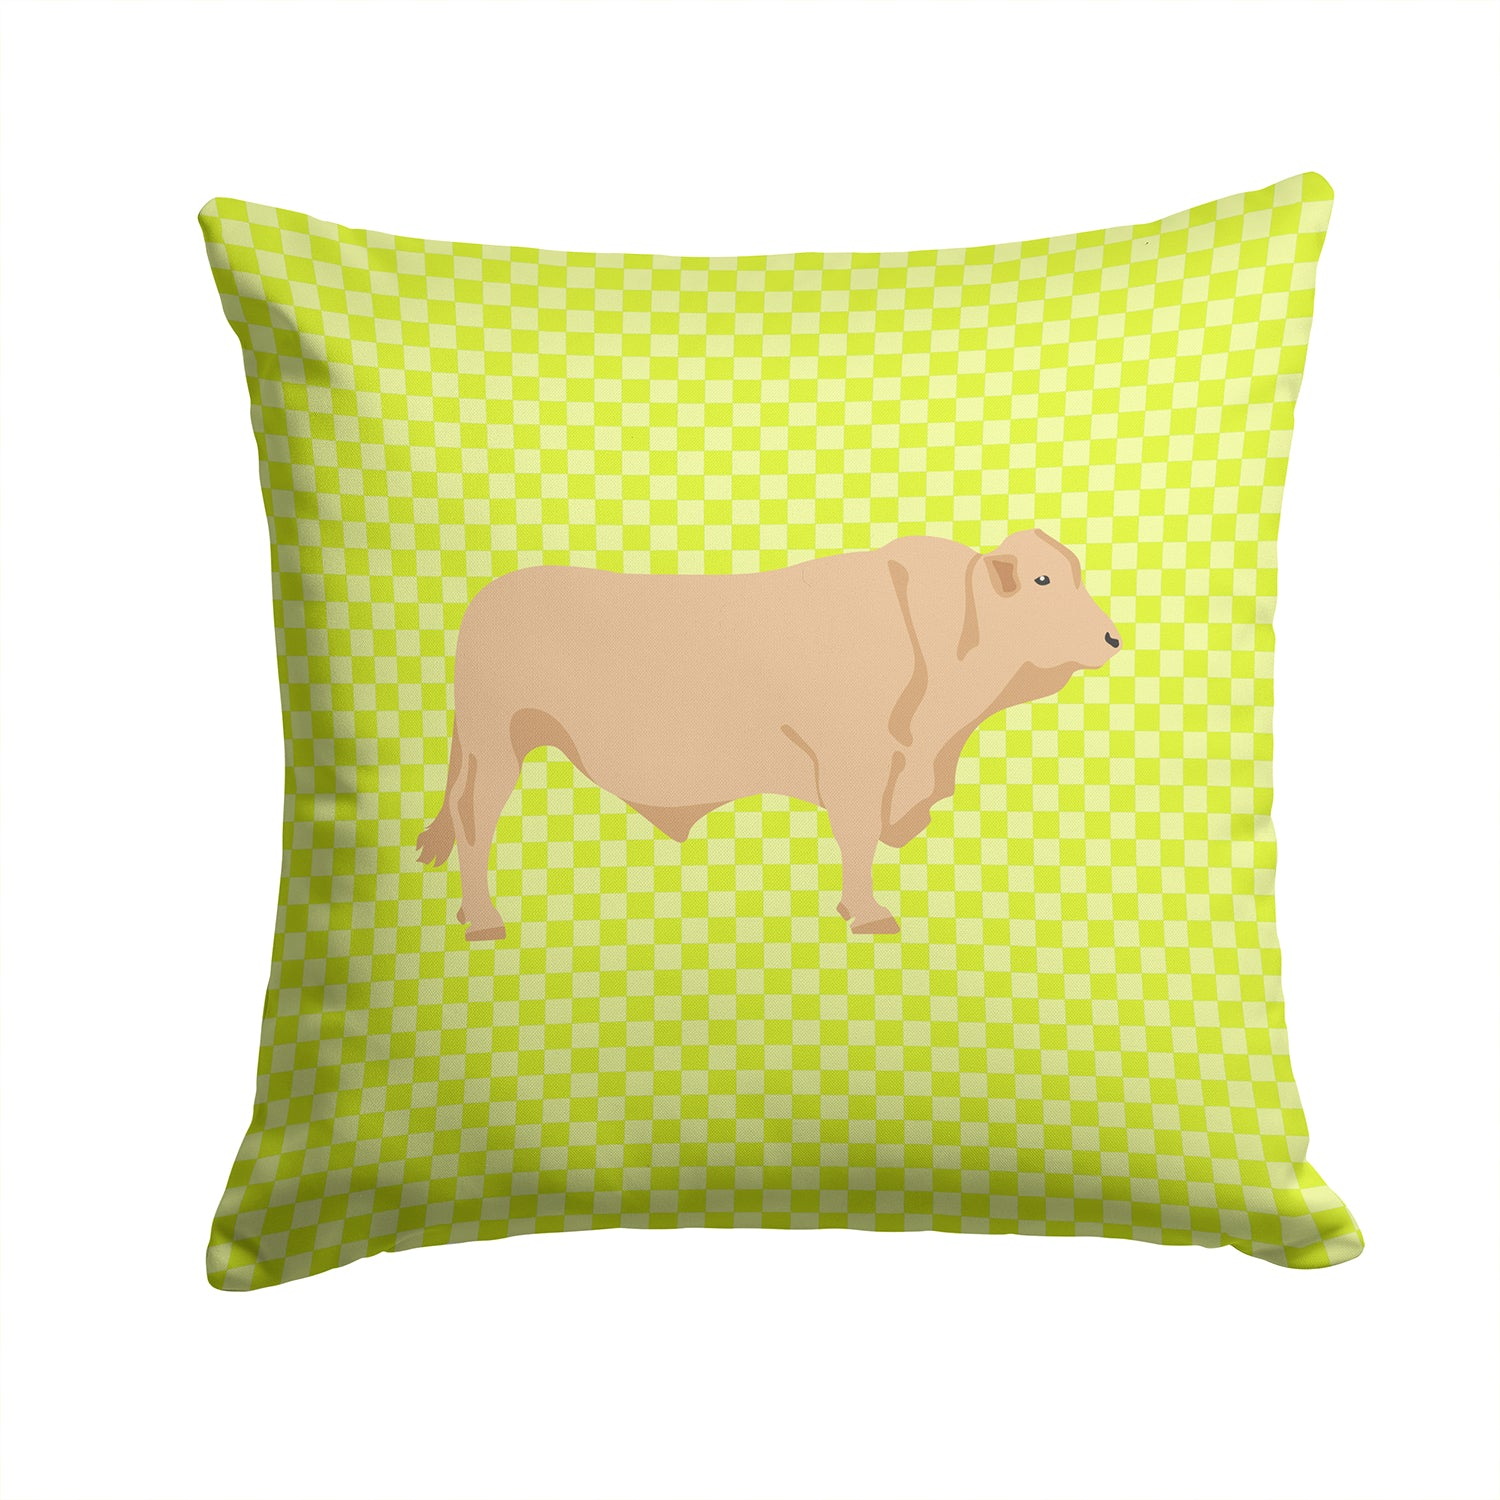 Charolais Cow Green Fabric Decorative Pillow BB7652PW1414 by Caroline's Treasures